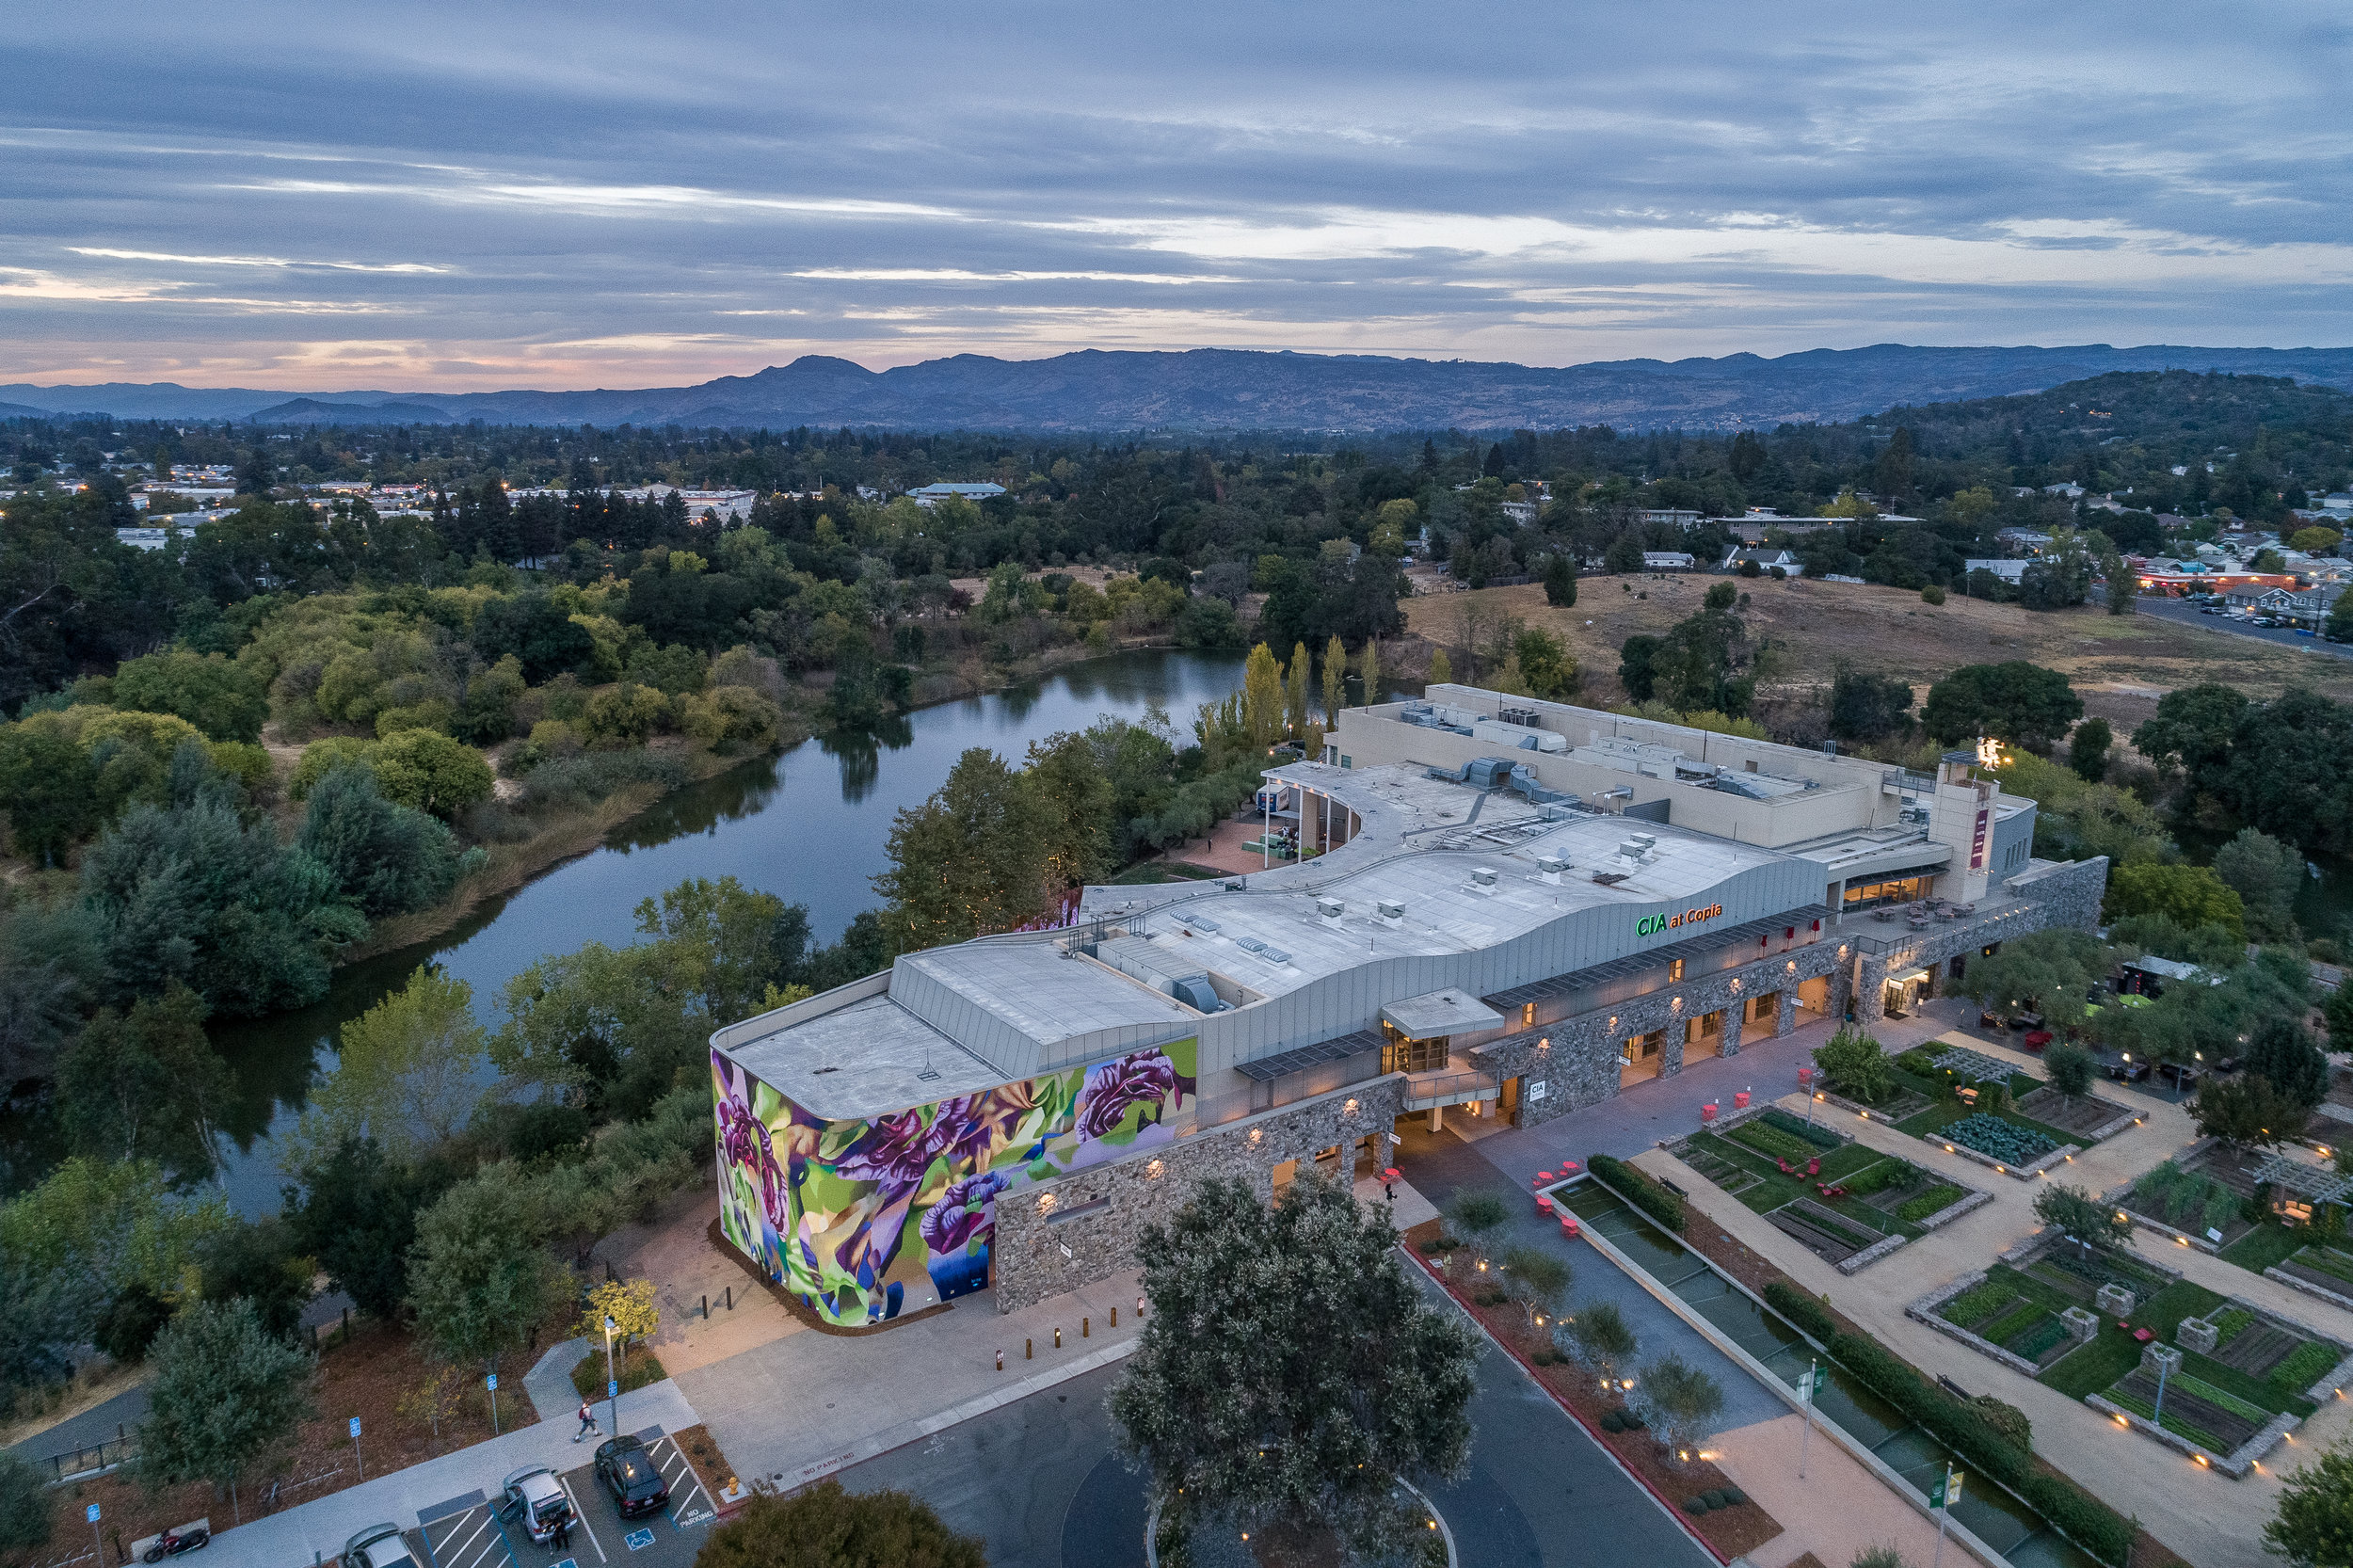 A bird's eye view of The Culinary Institute of America at Copia, located in Napa's Oxbow District, surrounded by the Napa River